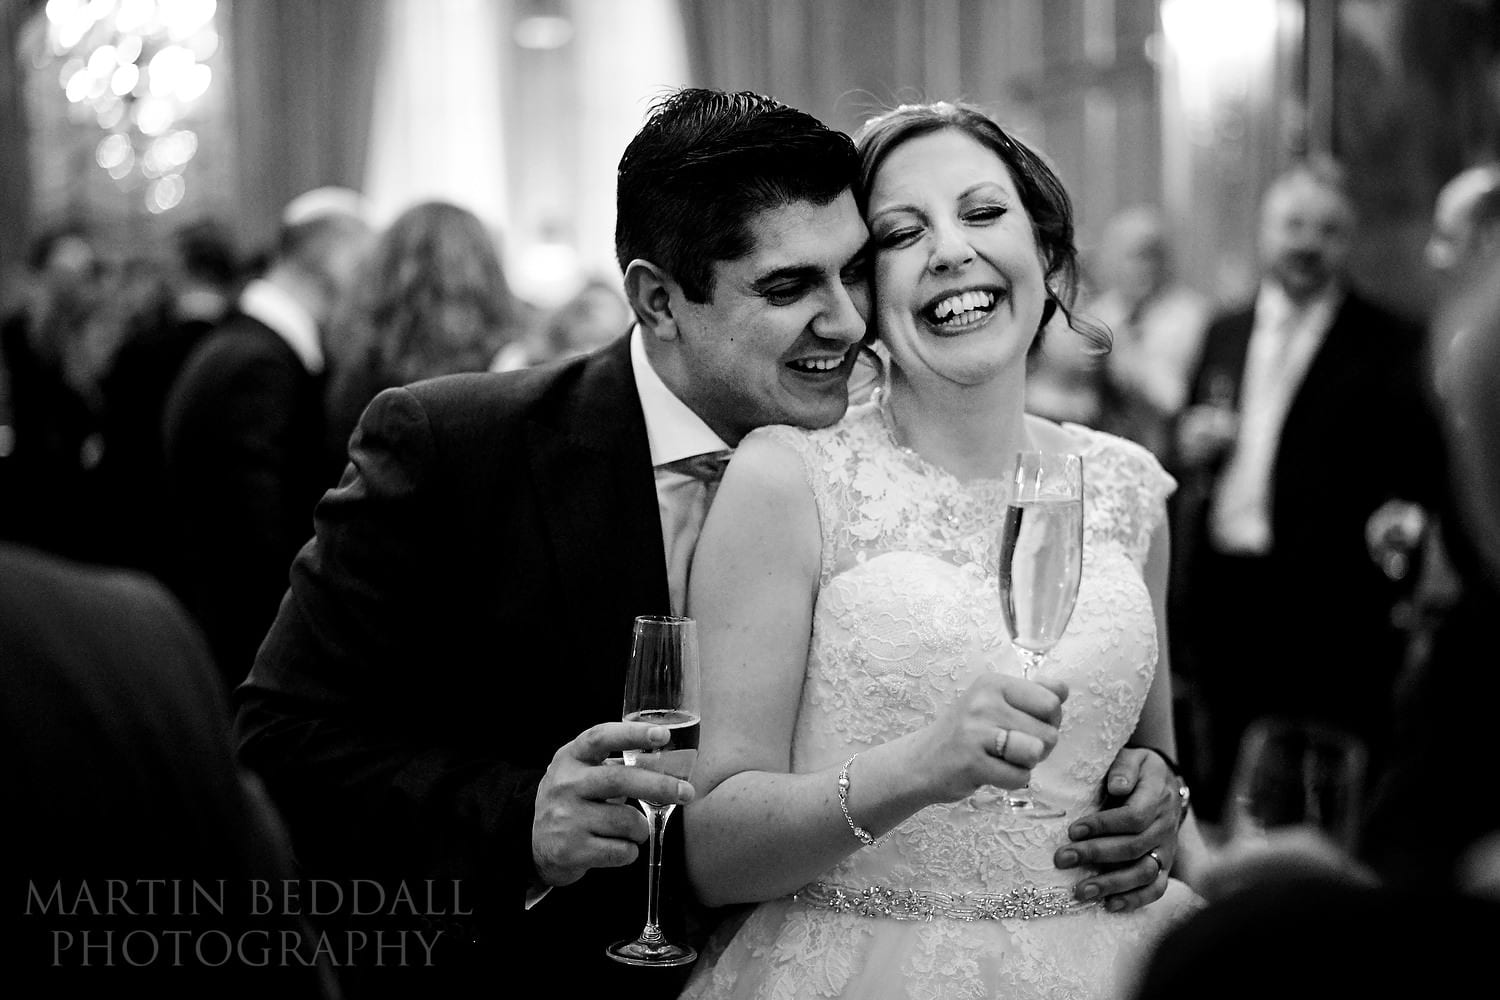 Natural moment between the bride and groom at Claridges wedding